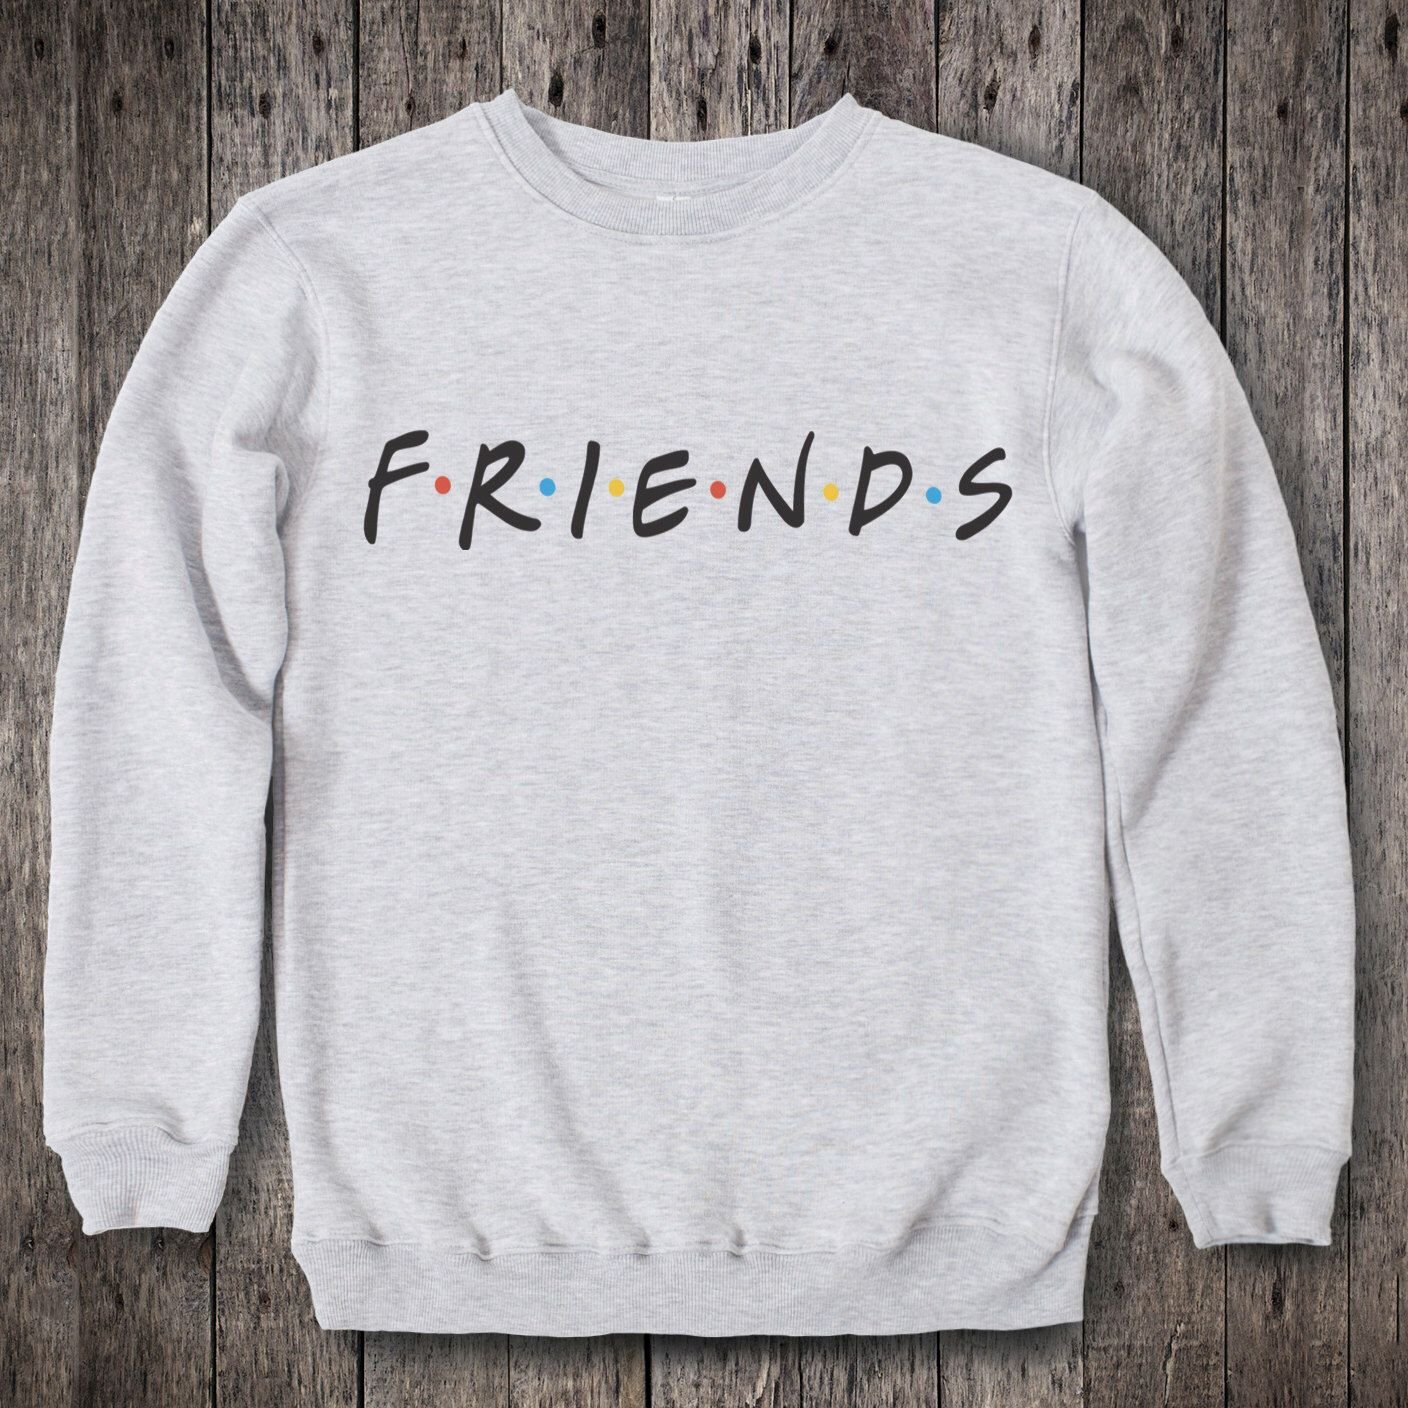 No New Friends for Adult Unisex Tees Mens hoodie Womens Sweater Warm Clothing Sweatshirts and Hoodies - inspired by Friend Tv Show Hoodie 4bIztz7px